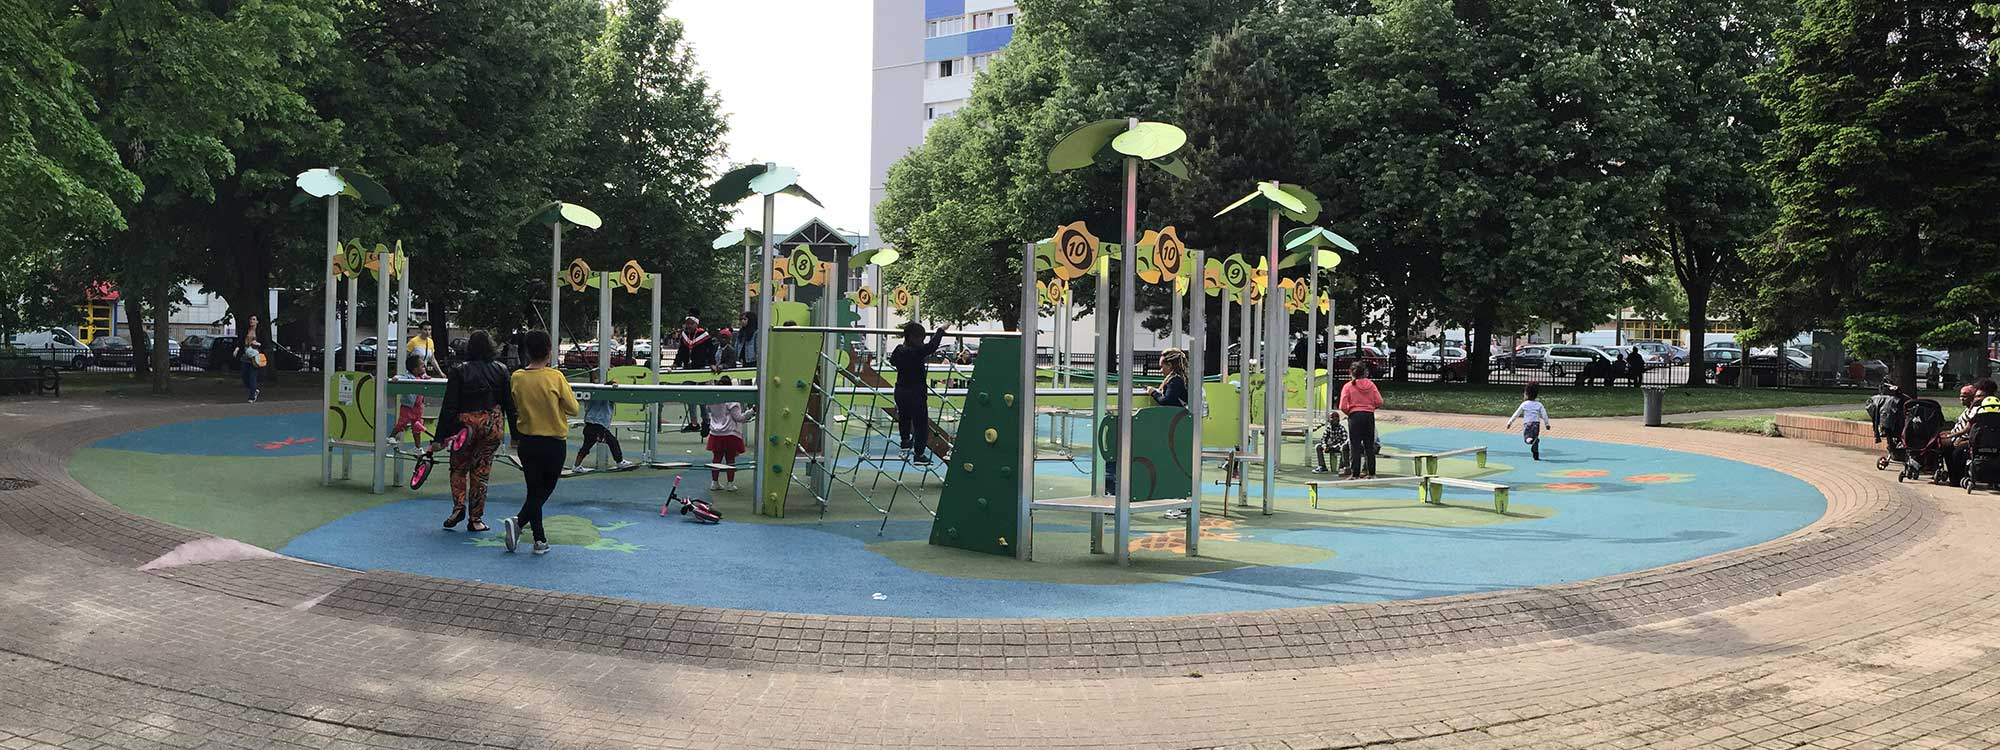 Manufacturer of outdoor playgrounds